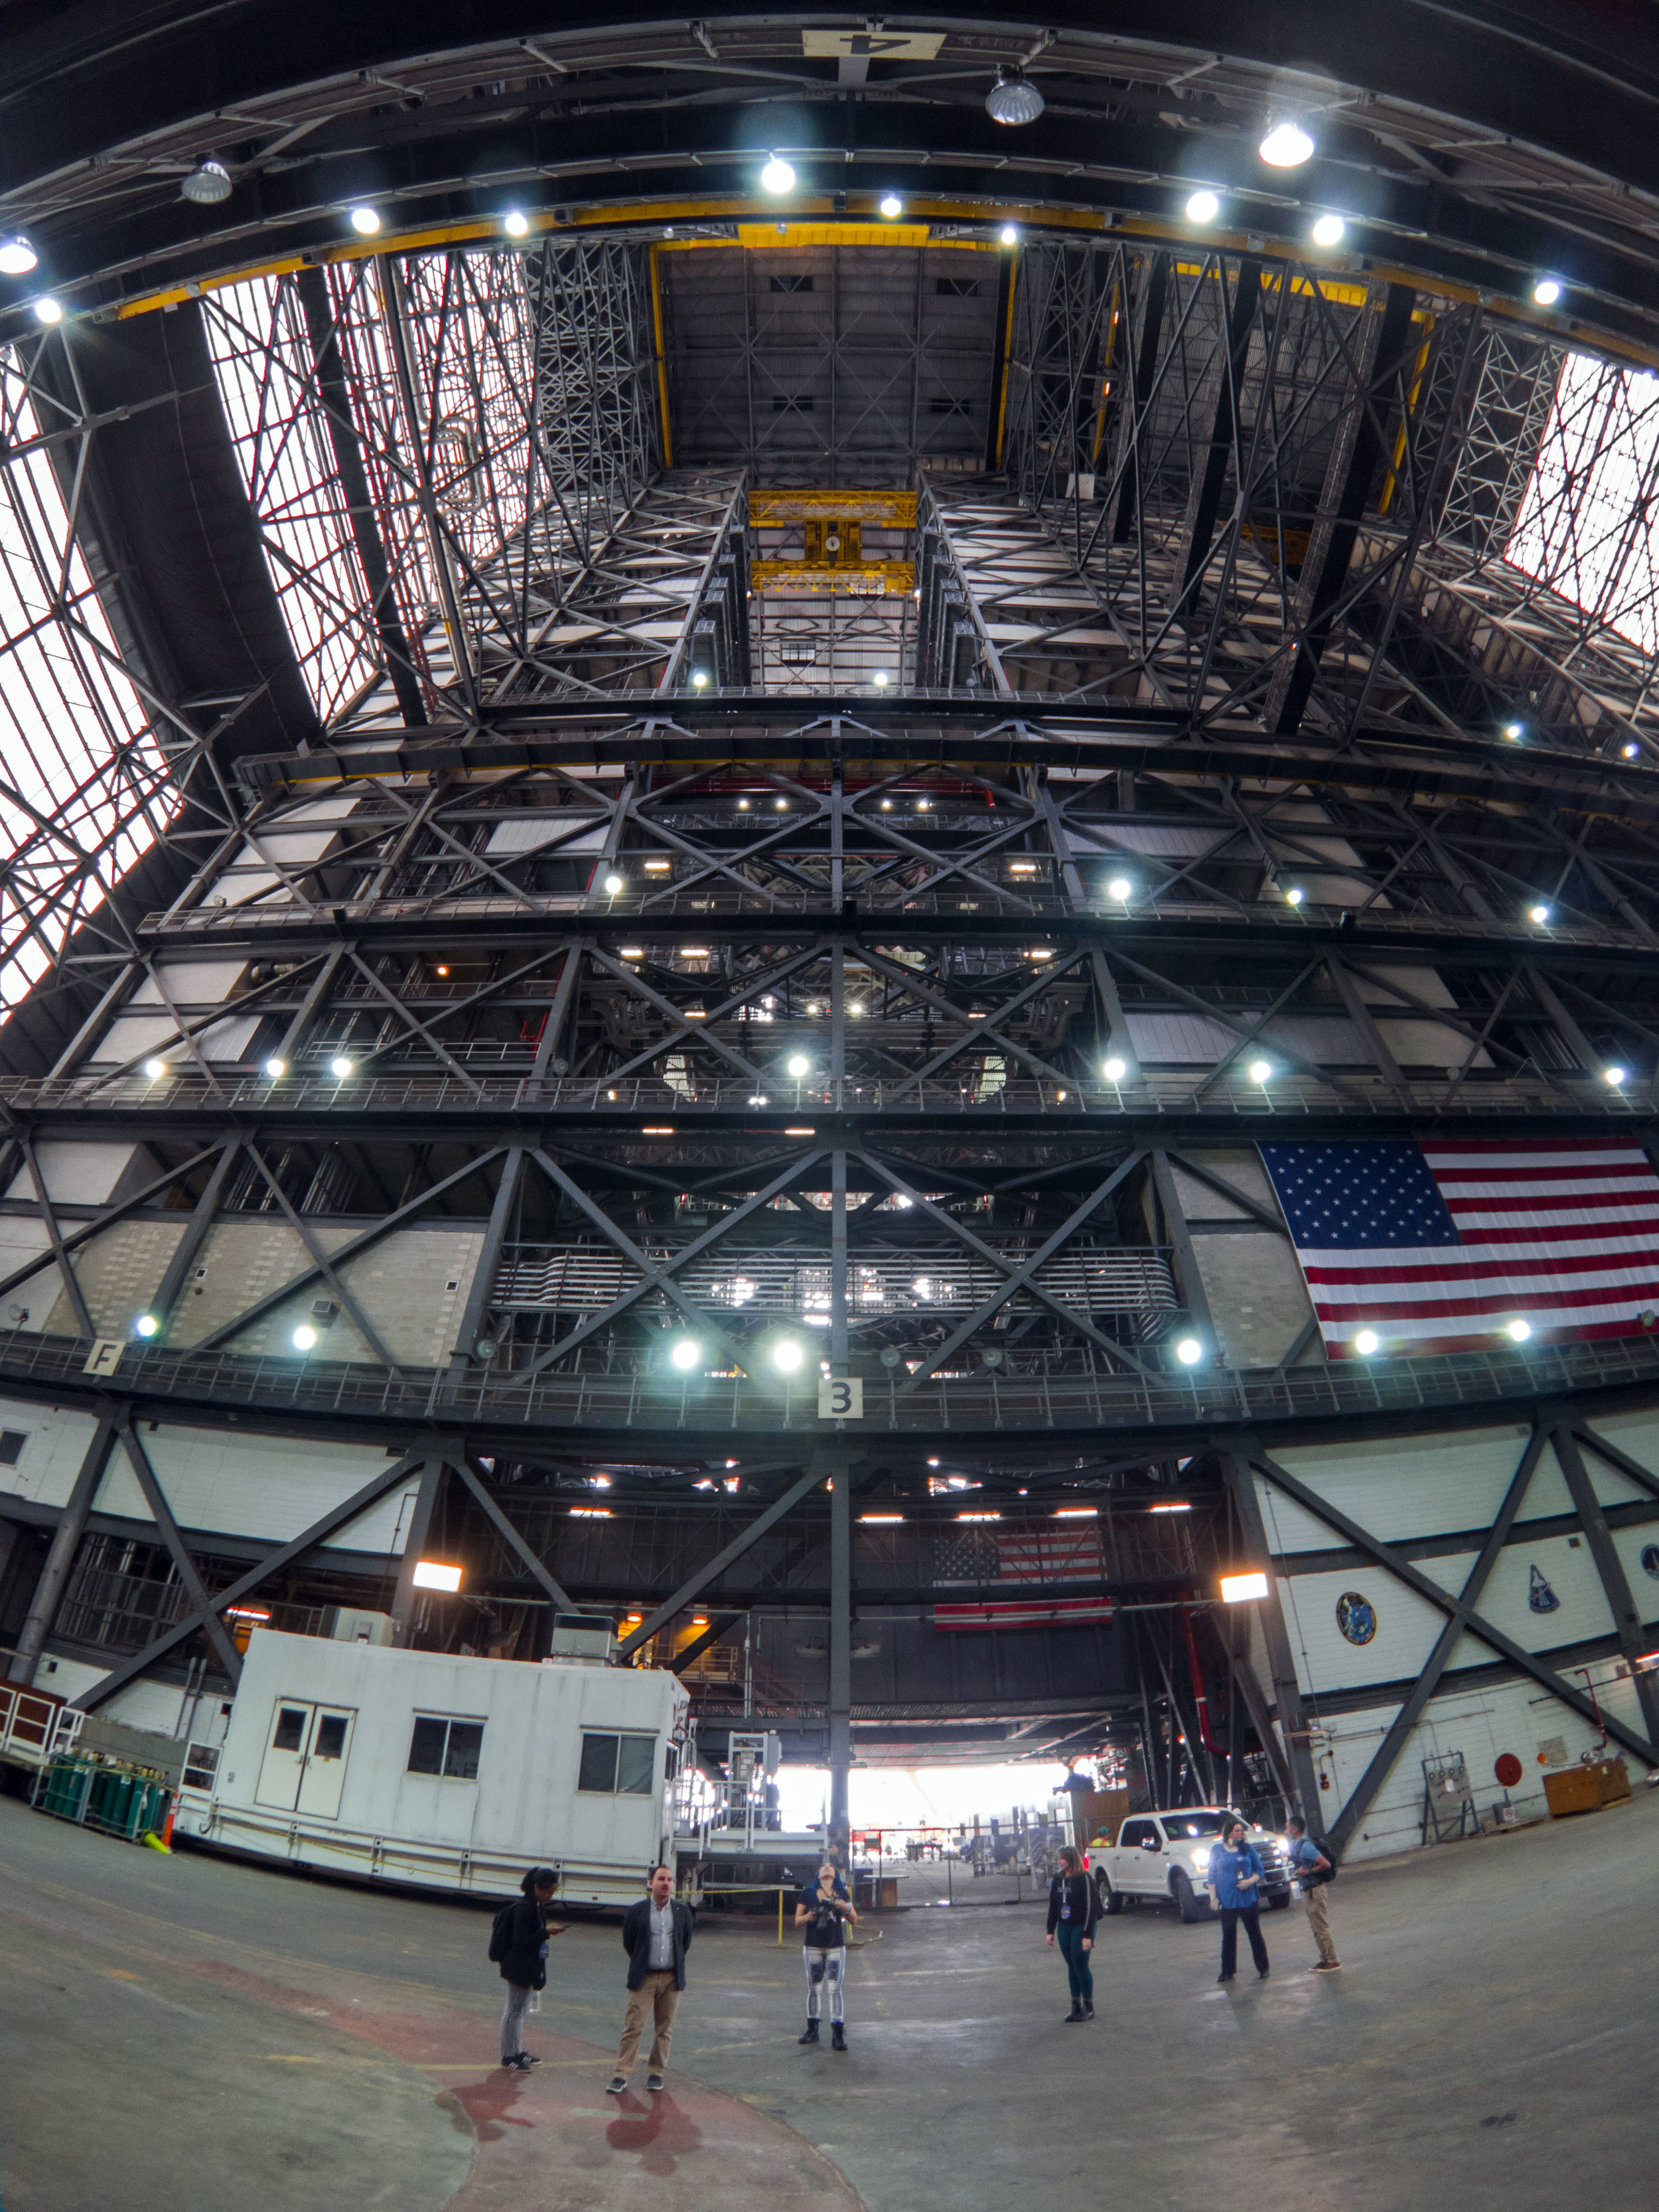 Looking up into High Bay 3